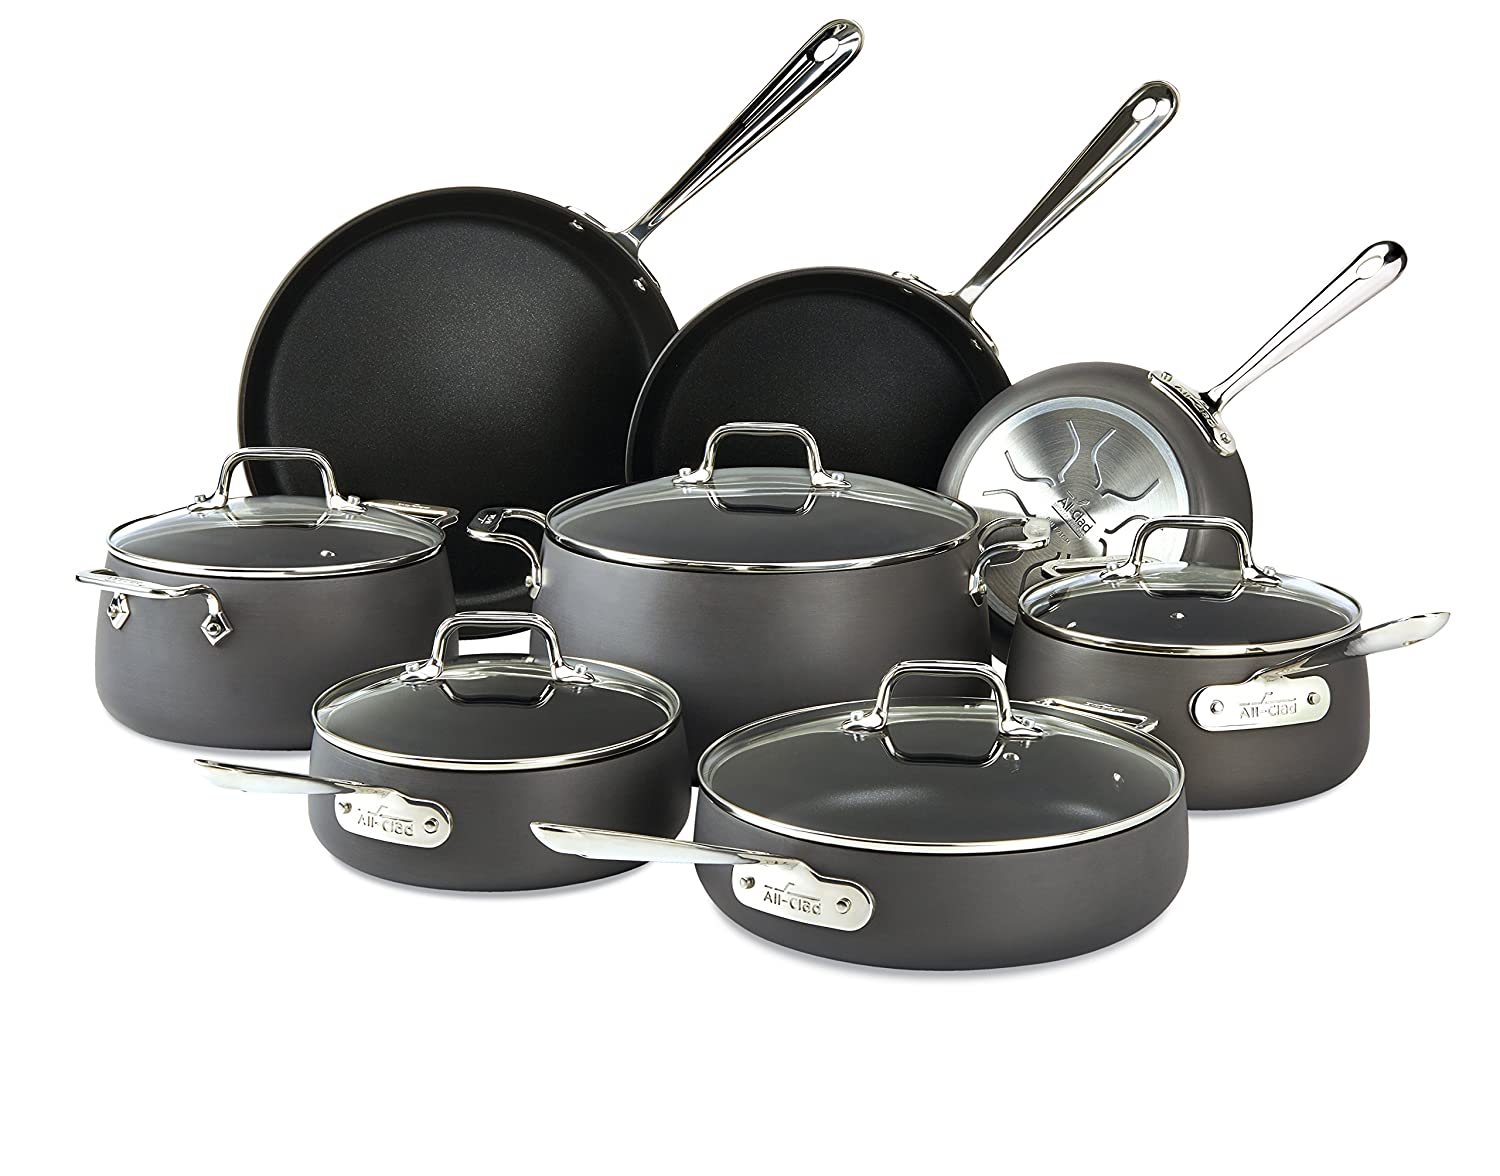 All-Clad E785SB64 HA1 Hard Anodized Nonstick Cookware Set, Pots and Pans Set